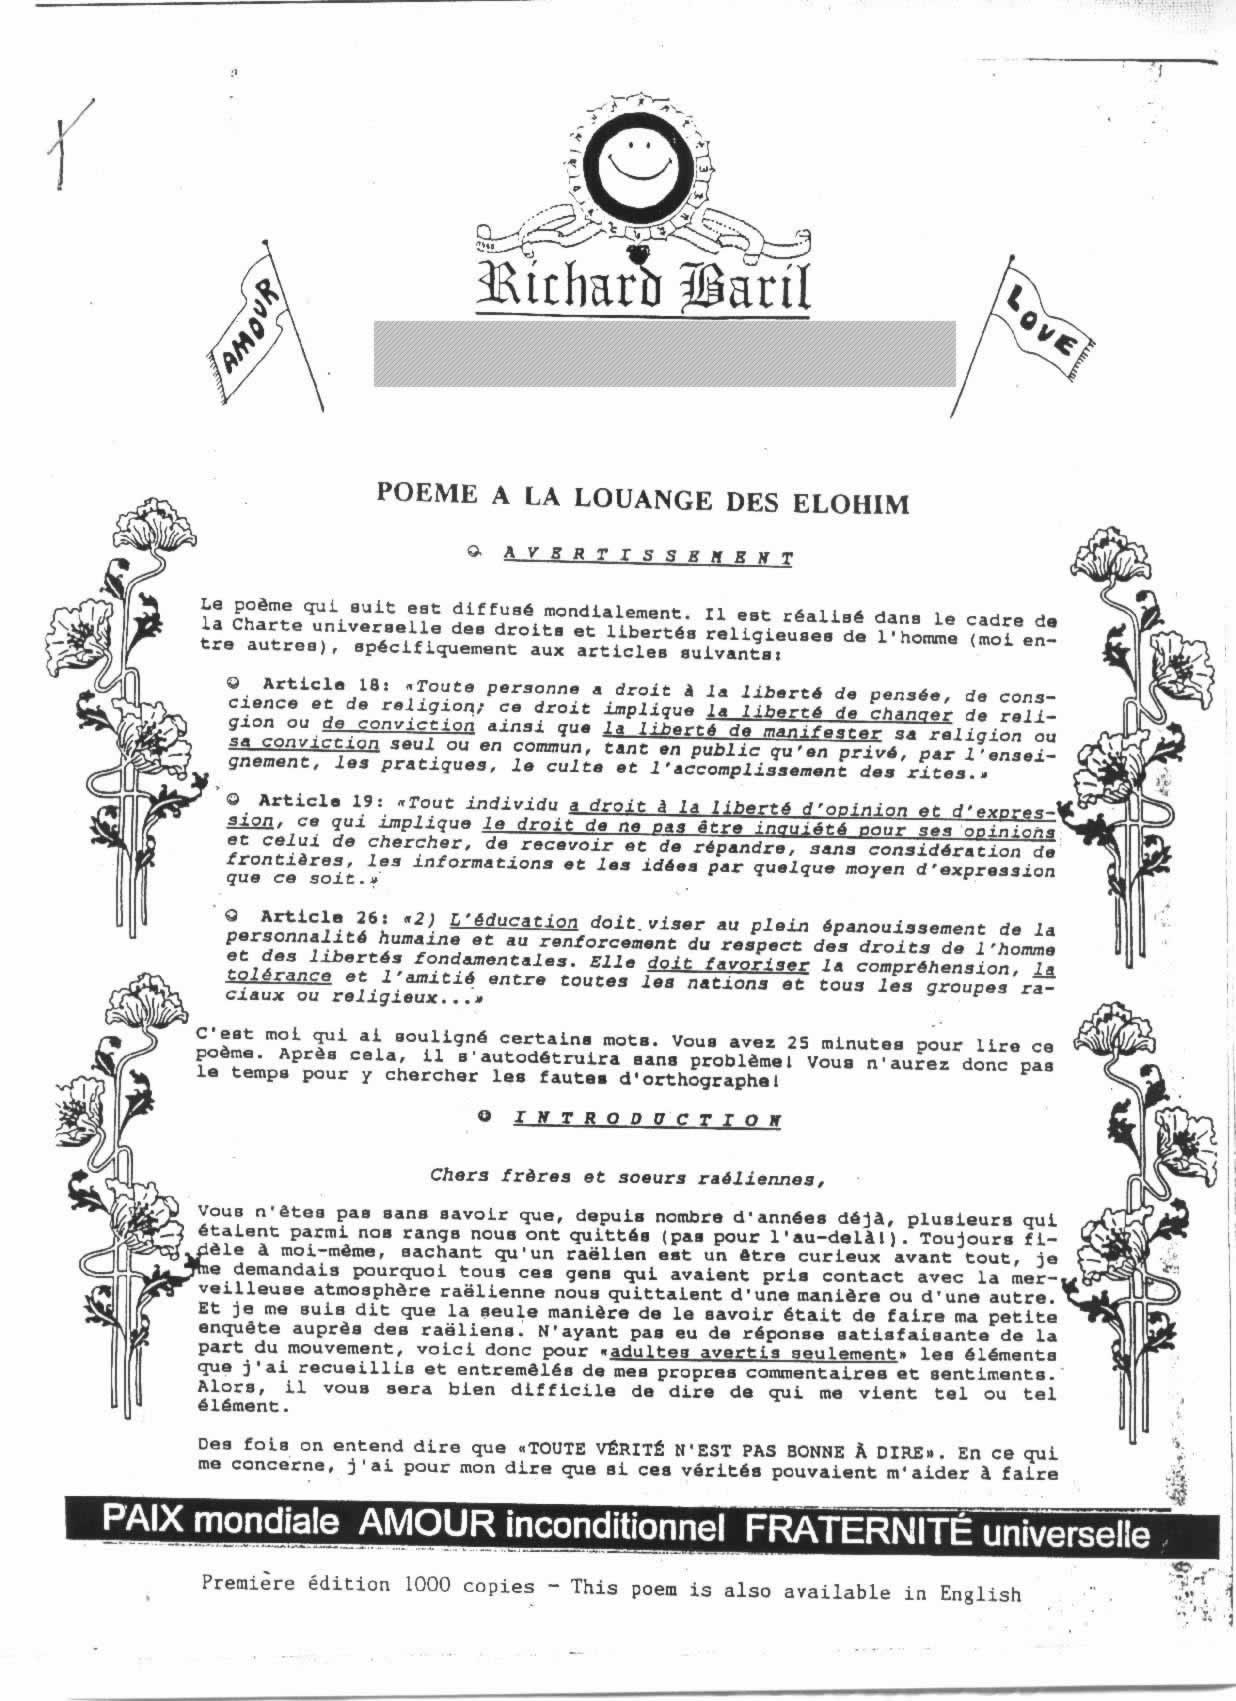 Lettre de Richard Baril 1